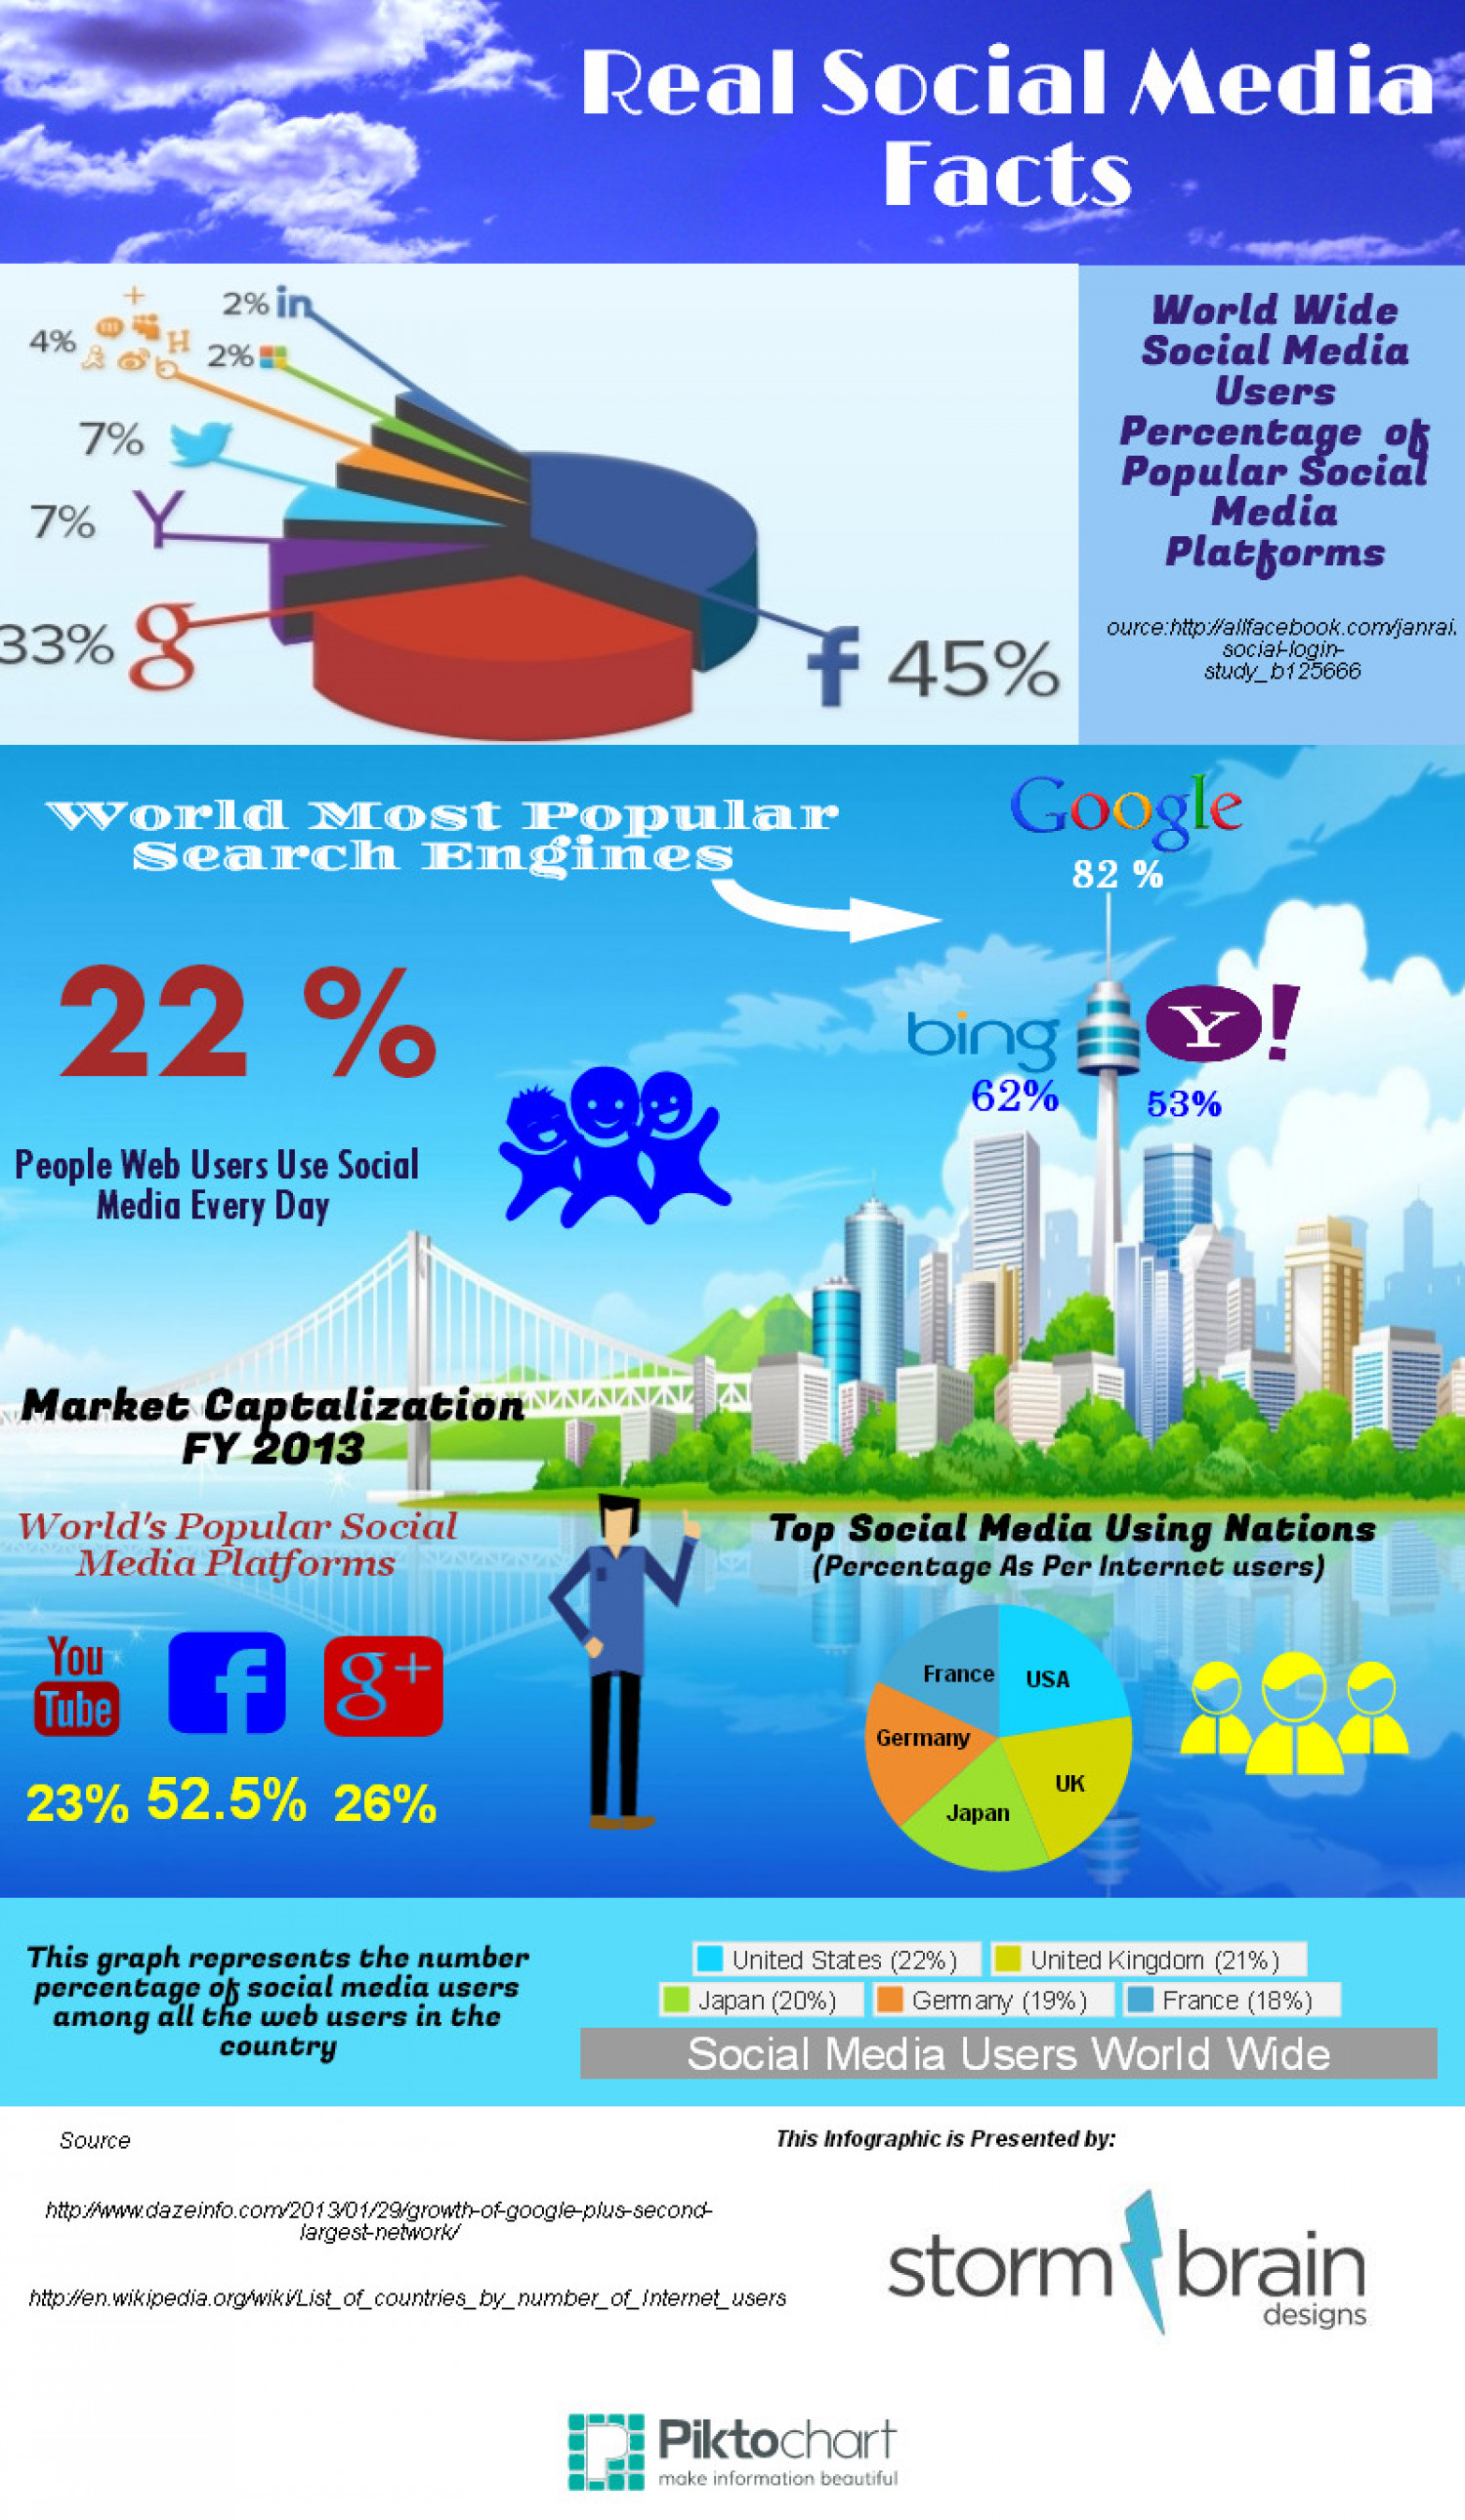 Real Social Media Fatcs Infographic